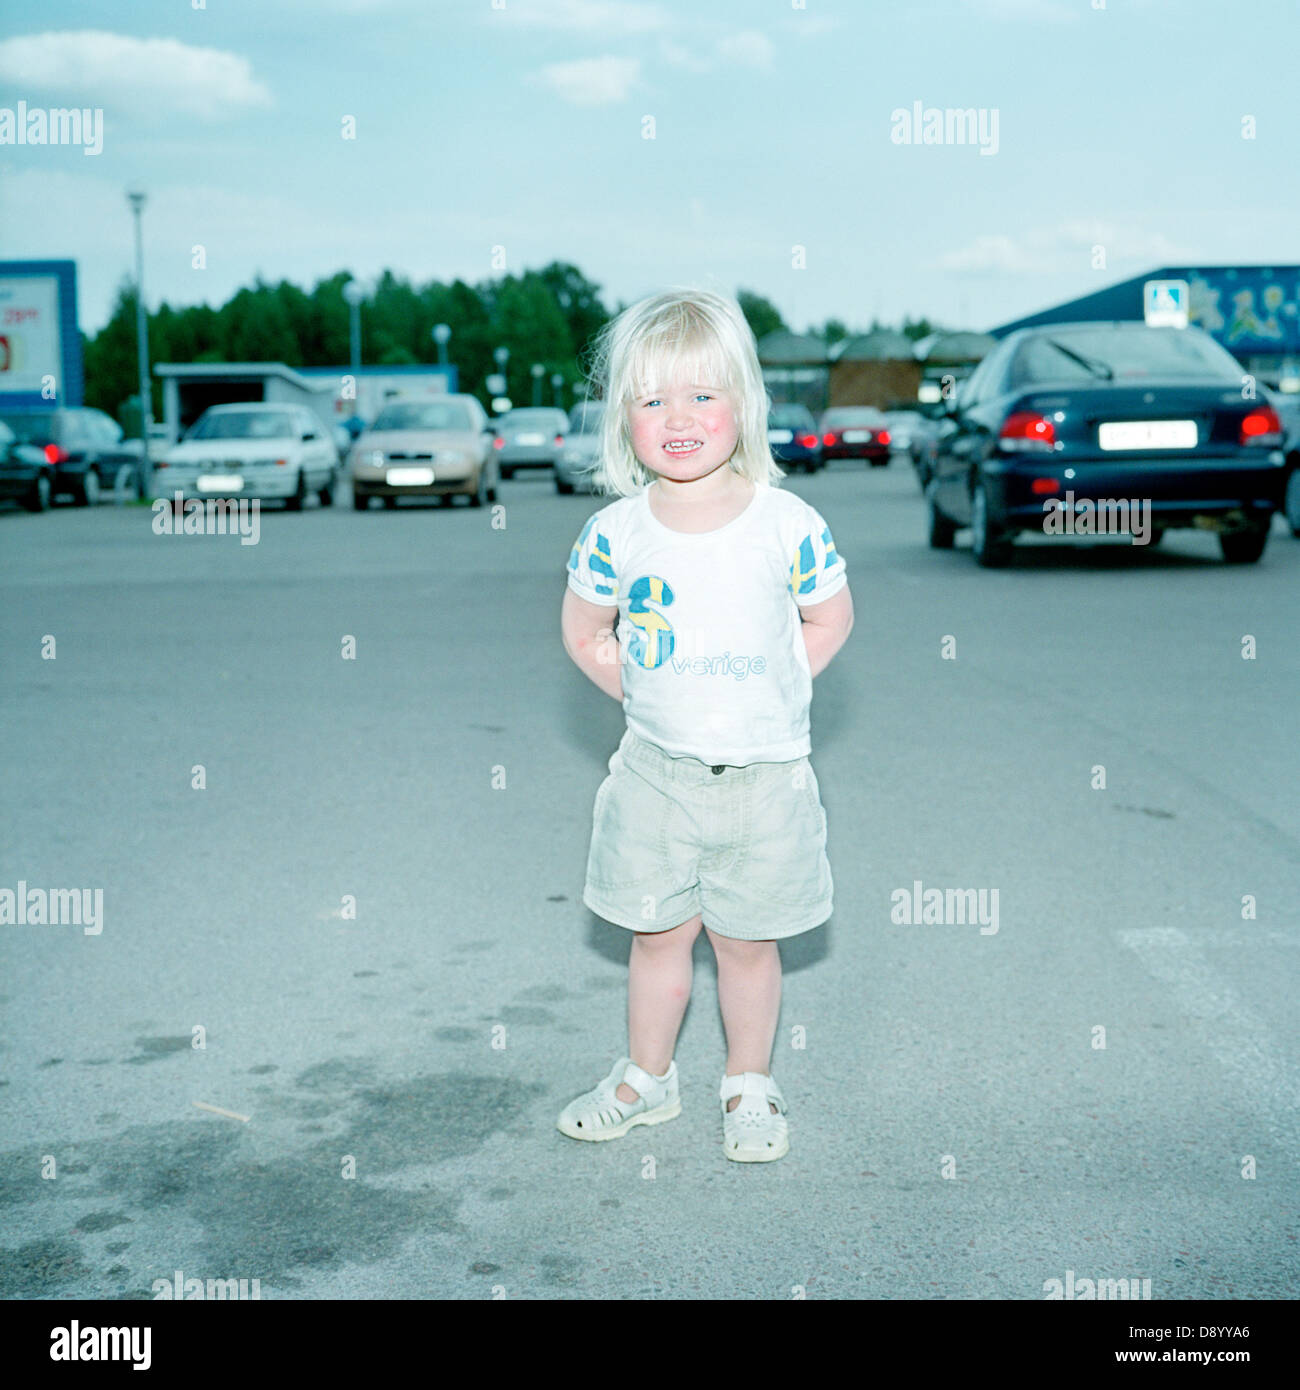 A smiling little girl standing in a parking lot, Sweden. - Stock Image